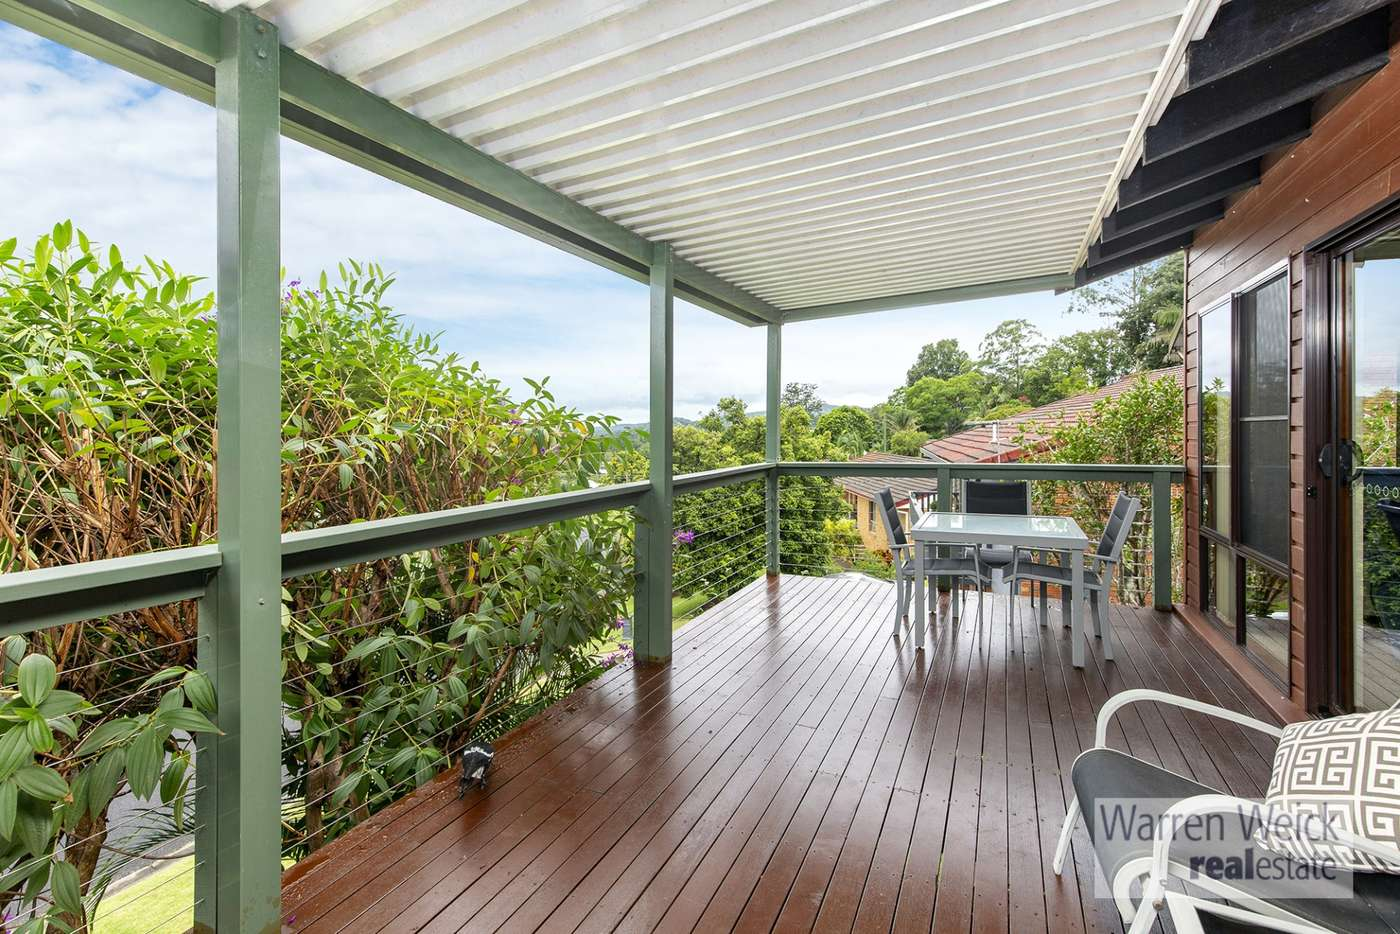 Fifth view of Homely house listing, 2 Coronation Place, Bellingen NSW 2454